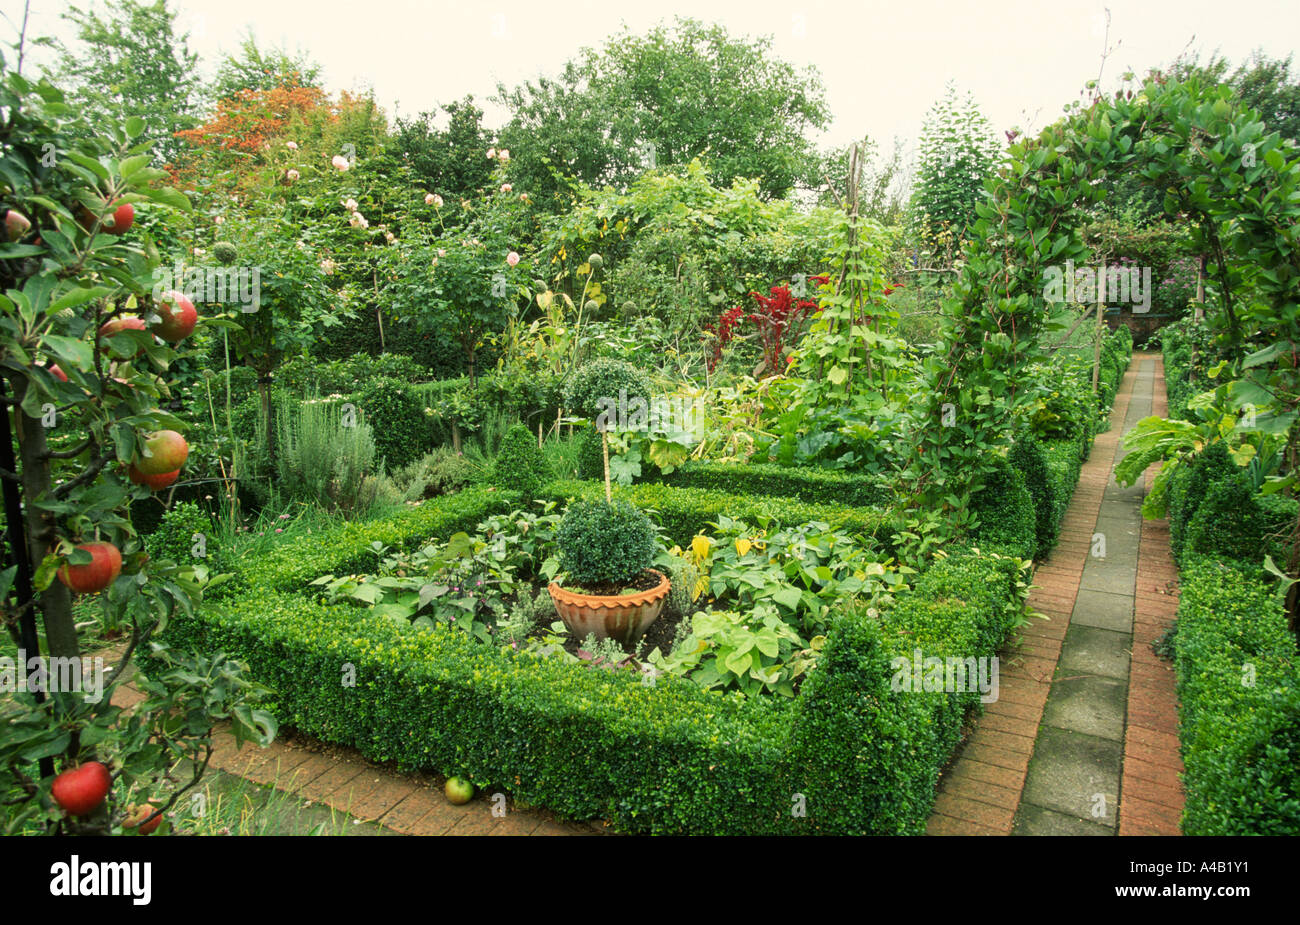 Vegetable Garden With Clipped Box Hedges And Apples Stock Photo